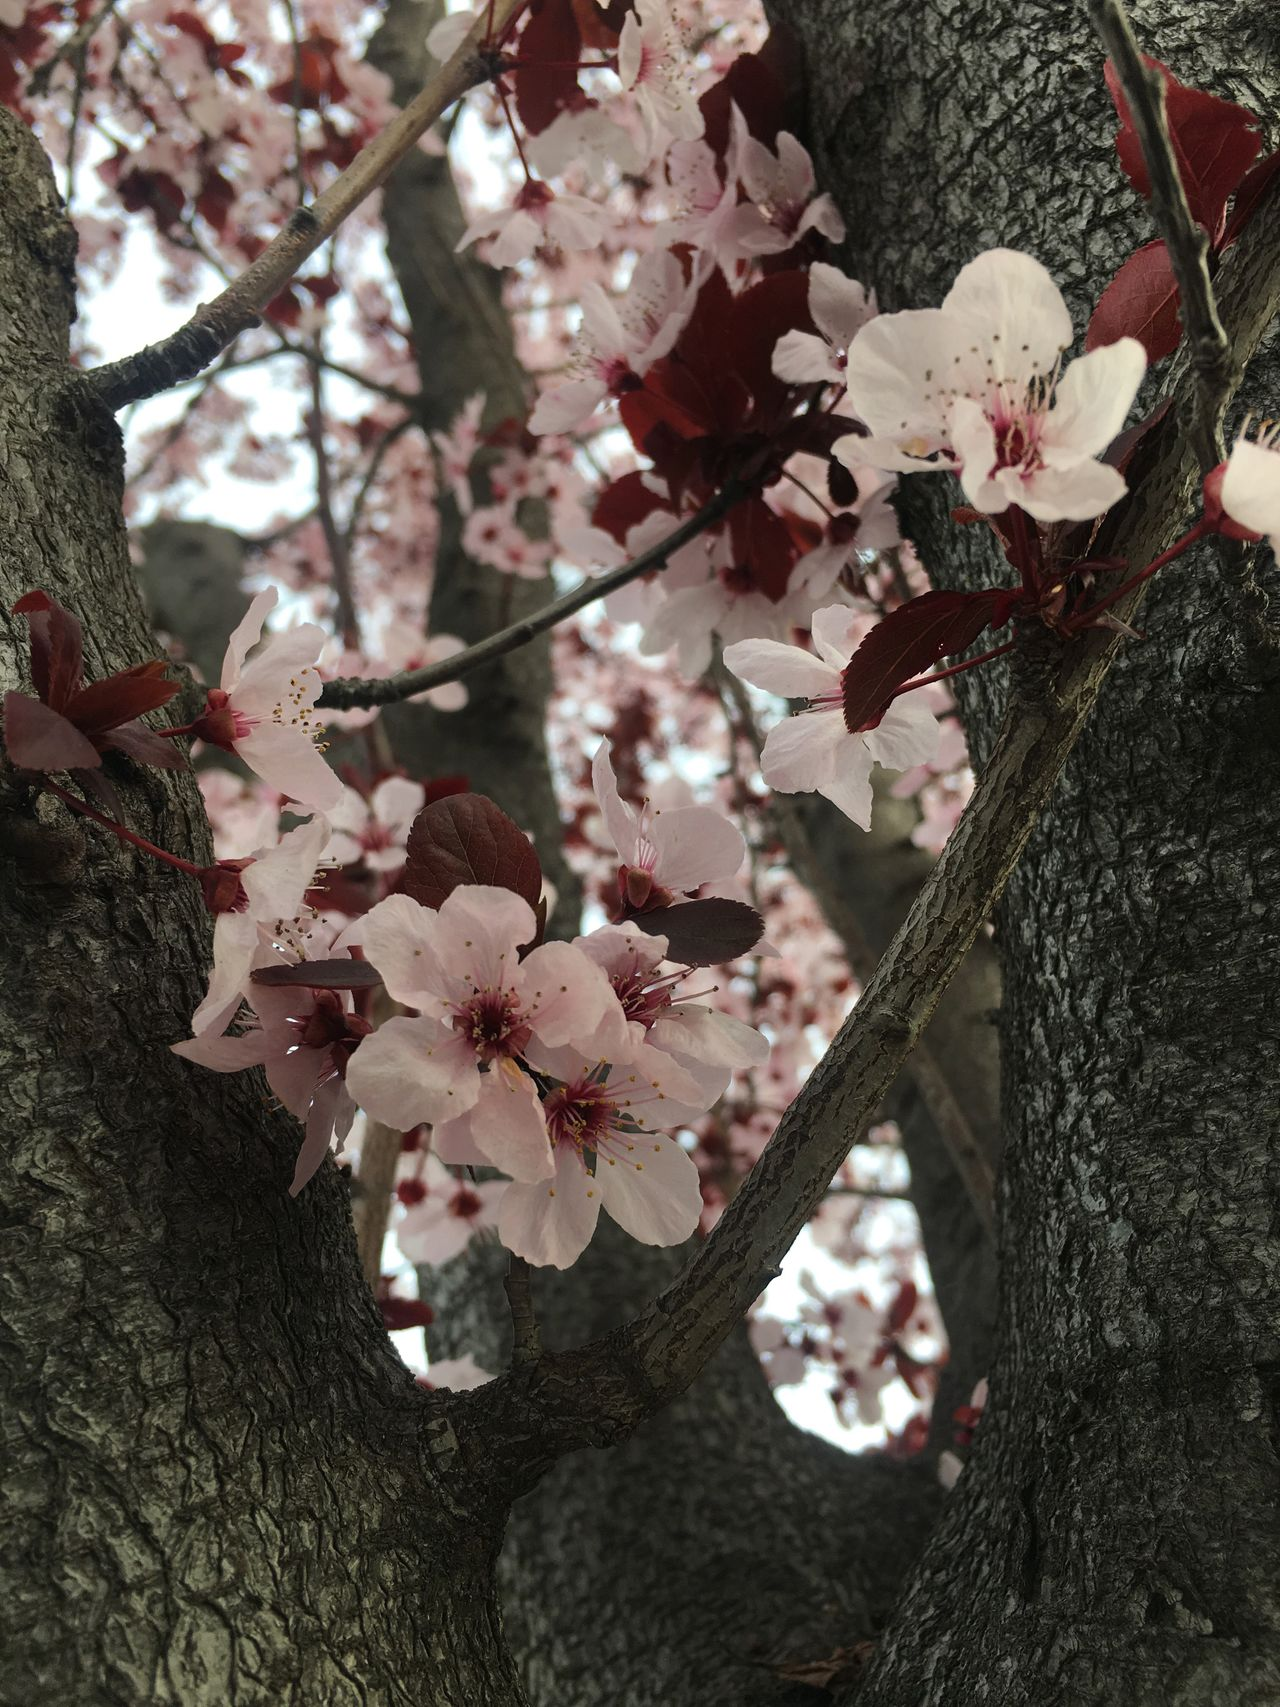 Cherry Flowers Cherry Blossoms Flower Branch Nature Beauty In Nature Pink Flower Cherry Blossom Viewing Nature Photography Pink Color No People Cherry Flower Pink Flower 🌸 Pink Tree Light Pink Outdoors Cherry Blossom Cherry Tree Cherry Blossom Tree Springtime Low Angle View Nature Cherry Blossom Millennial Pink The Great Outdoors - 2017 EyeEm Awards